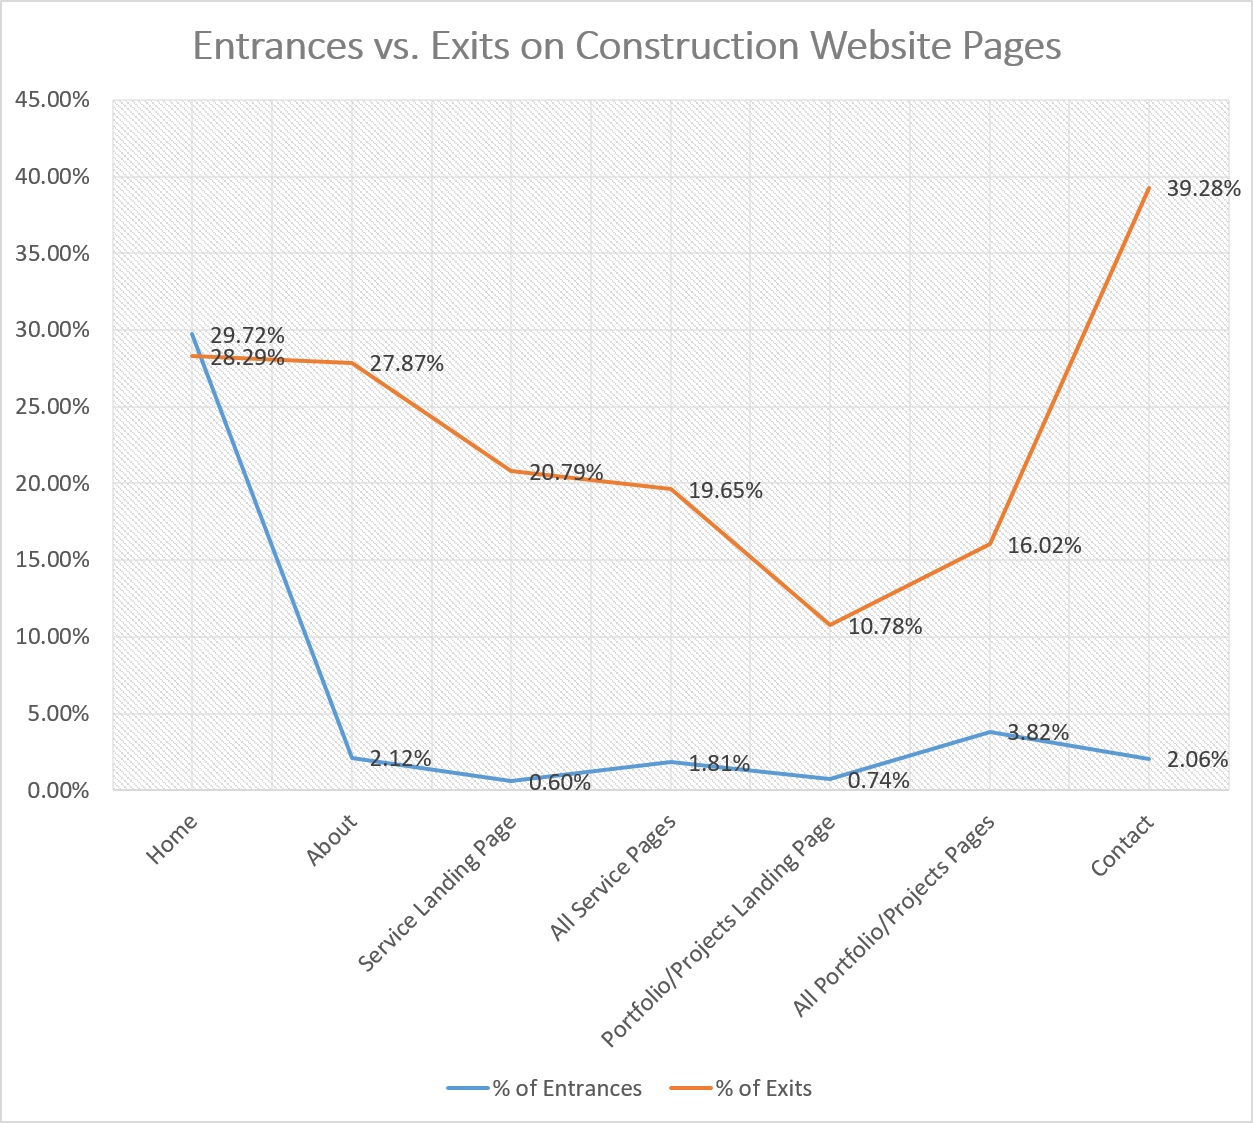 Entrances vs. Exits on Construction Website Pages